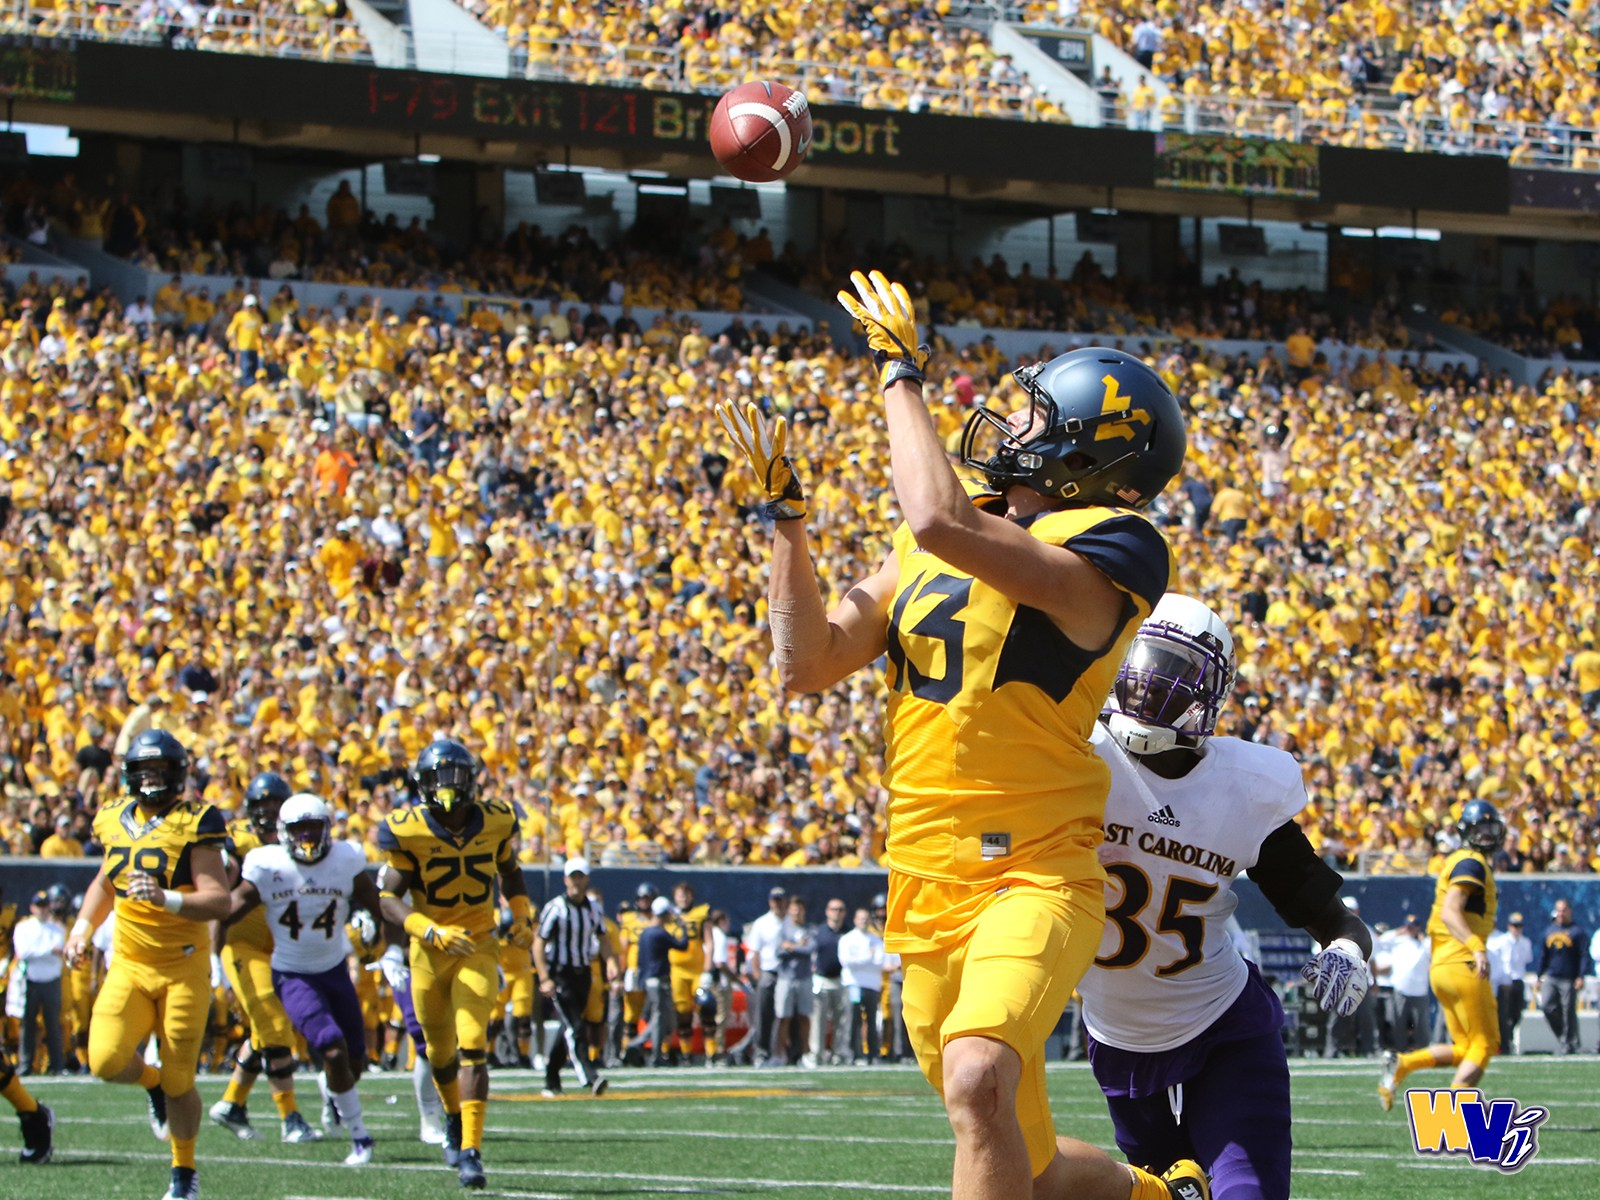 David Sills, WVU white wide receiver, 12 year old usc commit